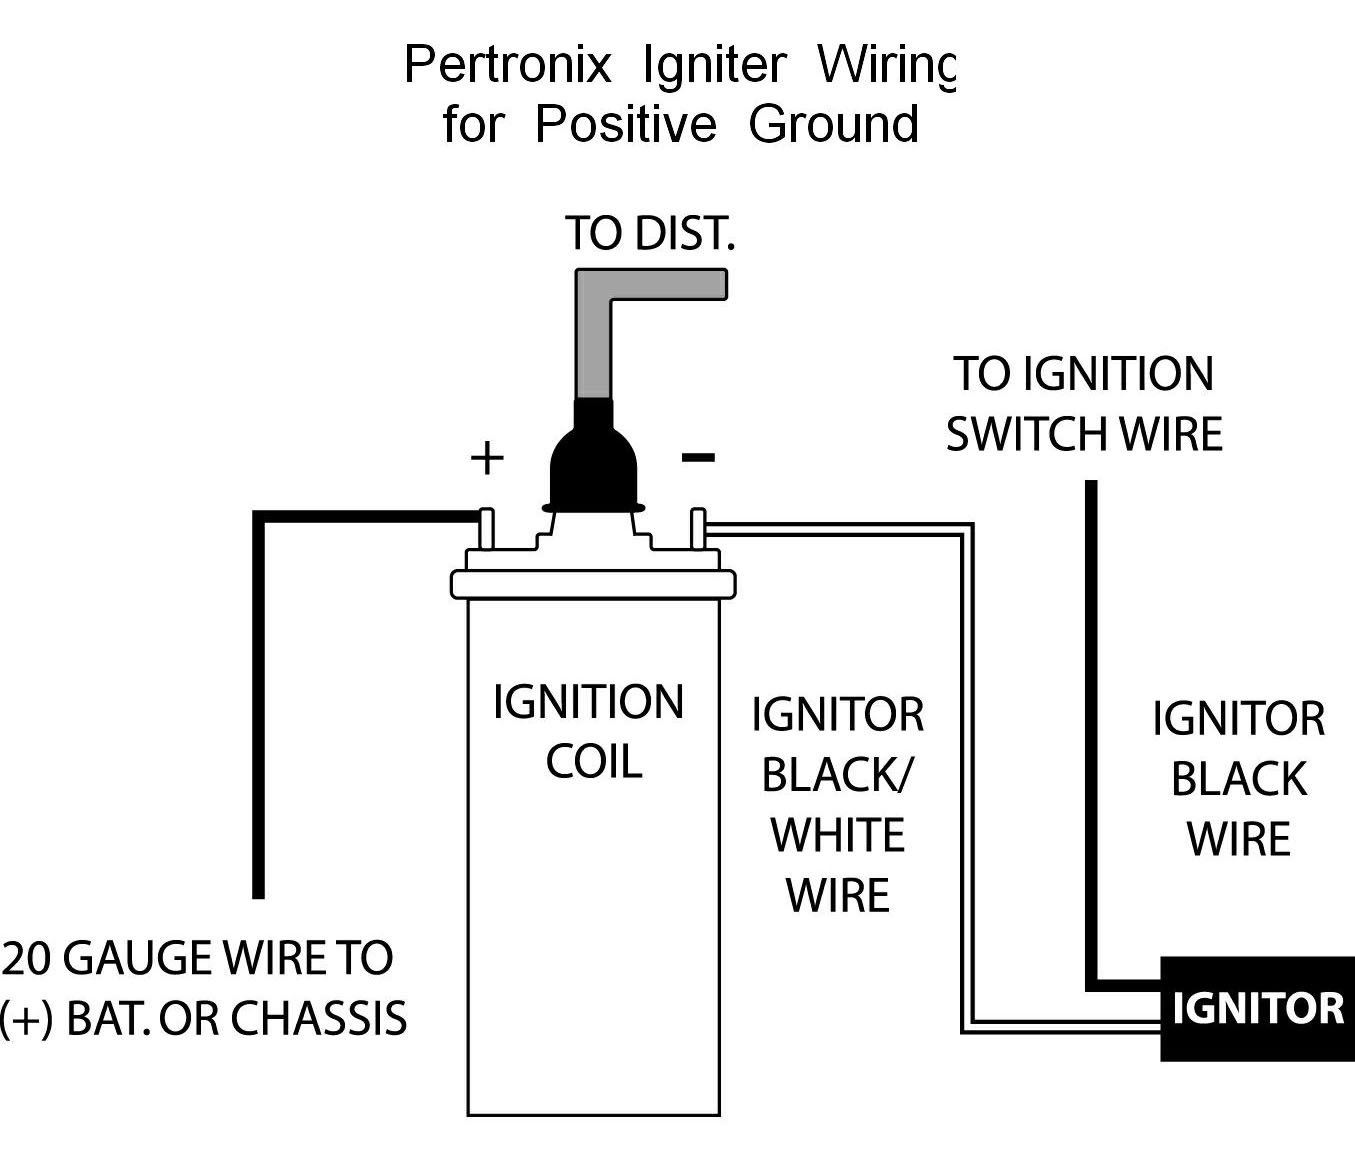 Msd Ignition Wiring Diagram 67 Chevy Trusted Distributor With Digital 6al Pertronix Ignitor Smart Diagrams U2022 6420